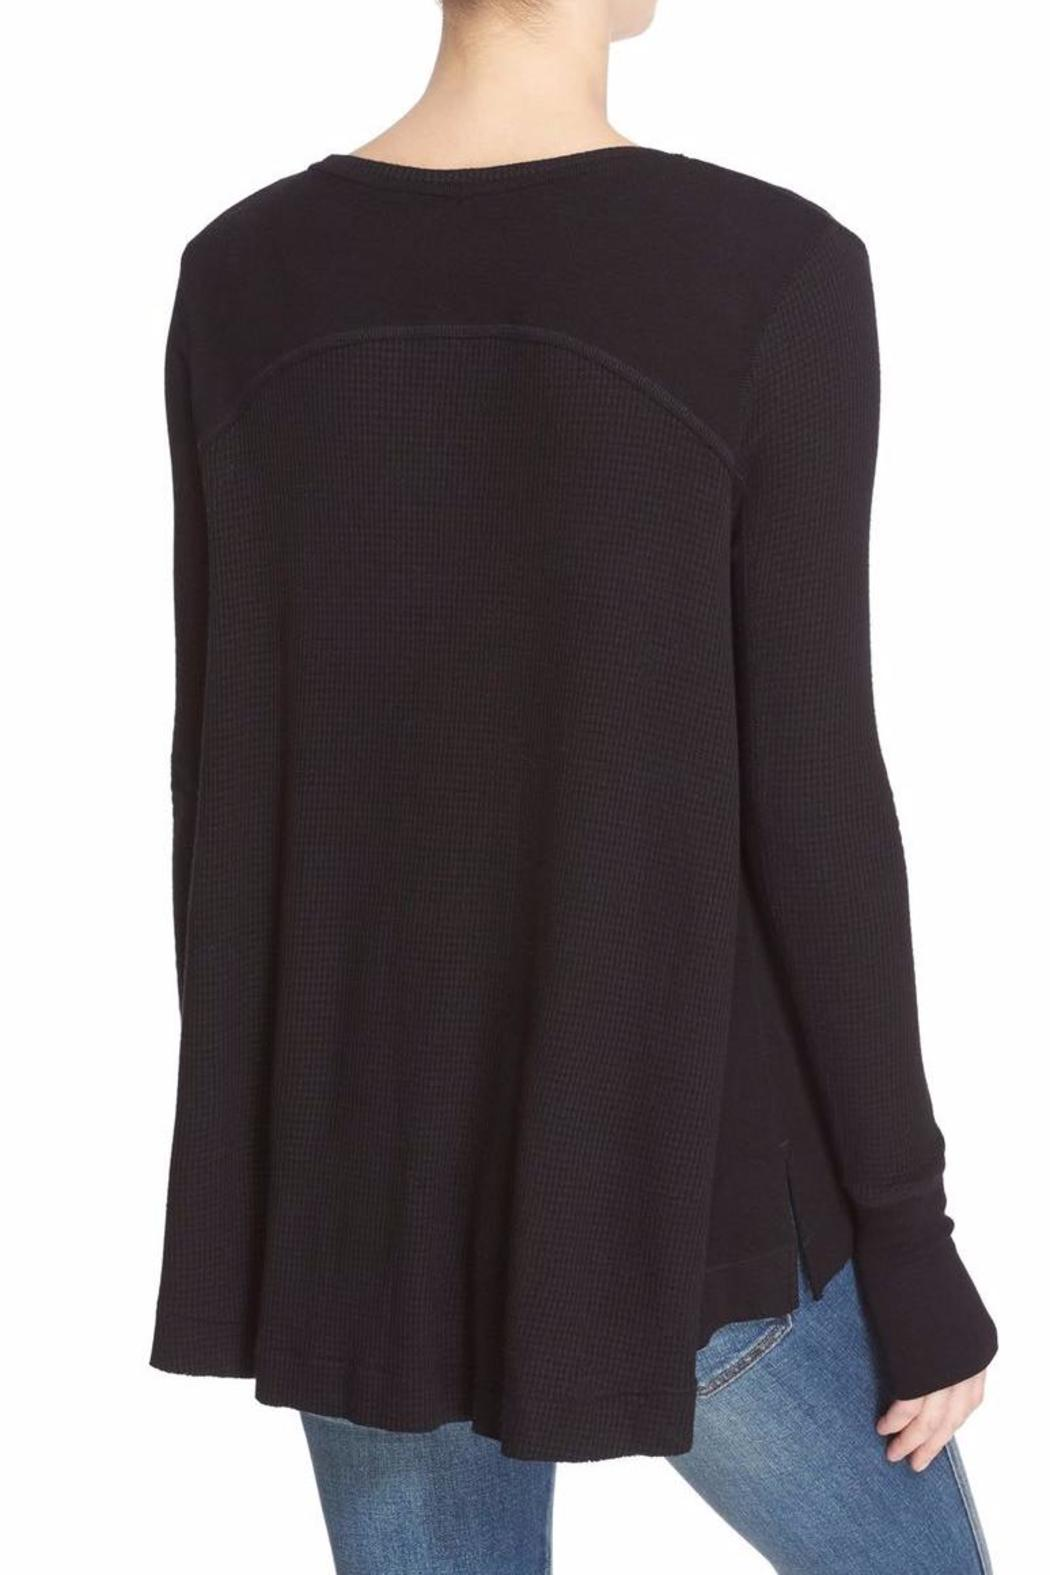 Free People Thermal Long Sleeve - Front Full Image